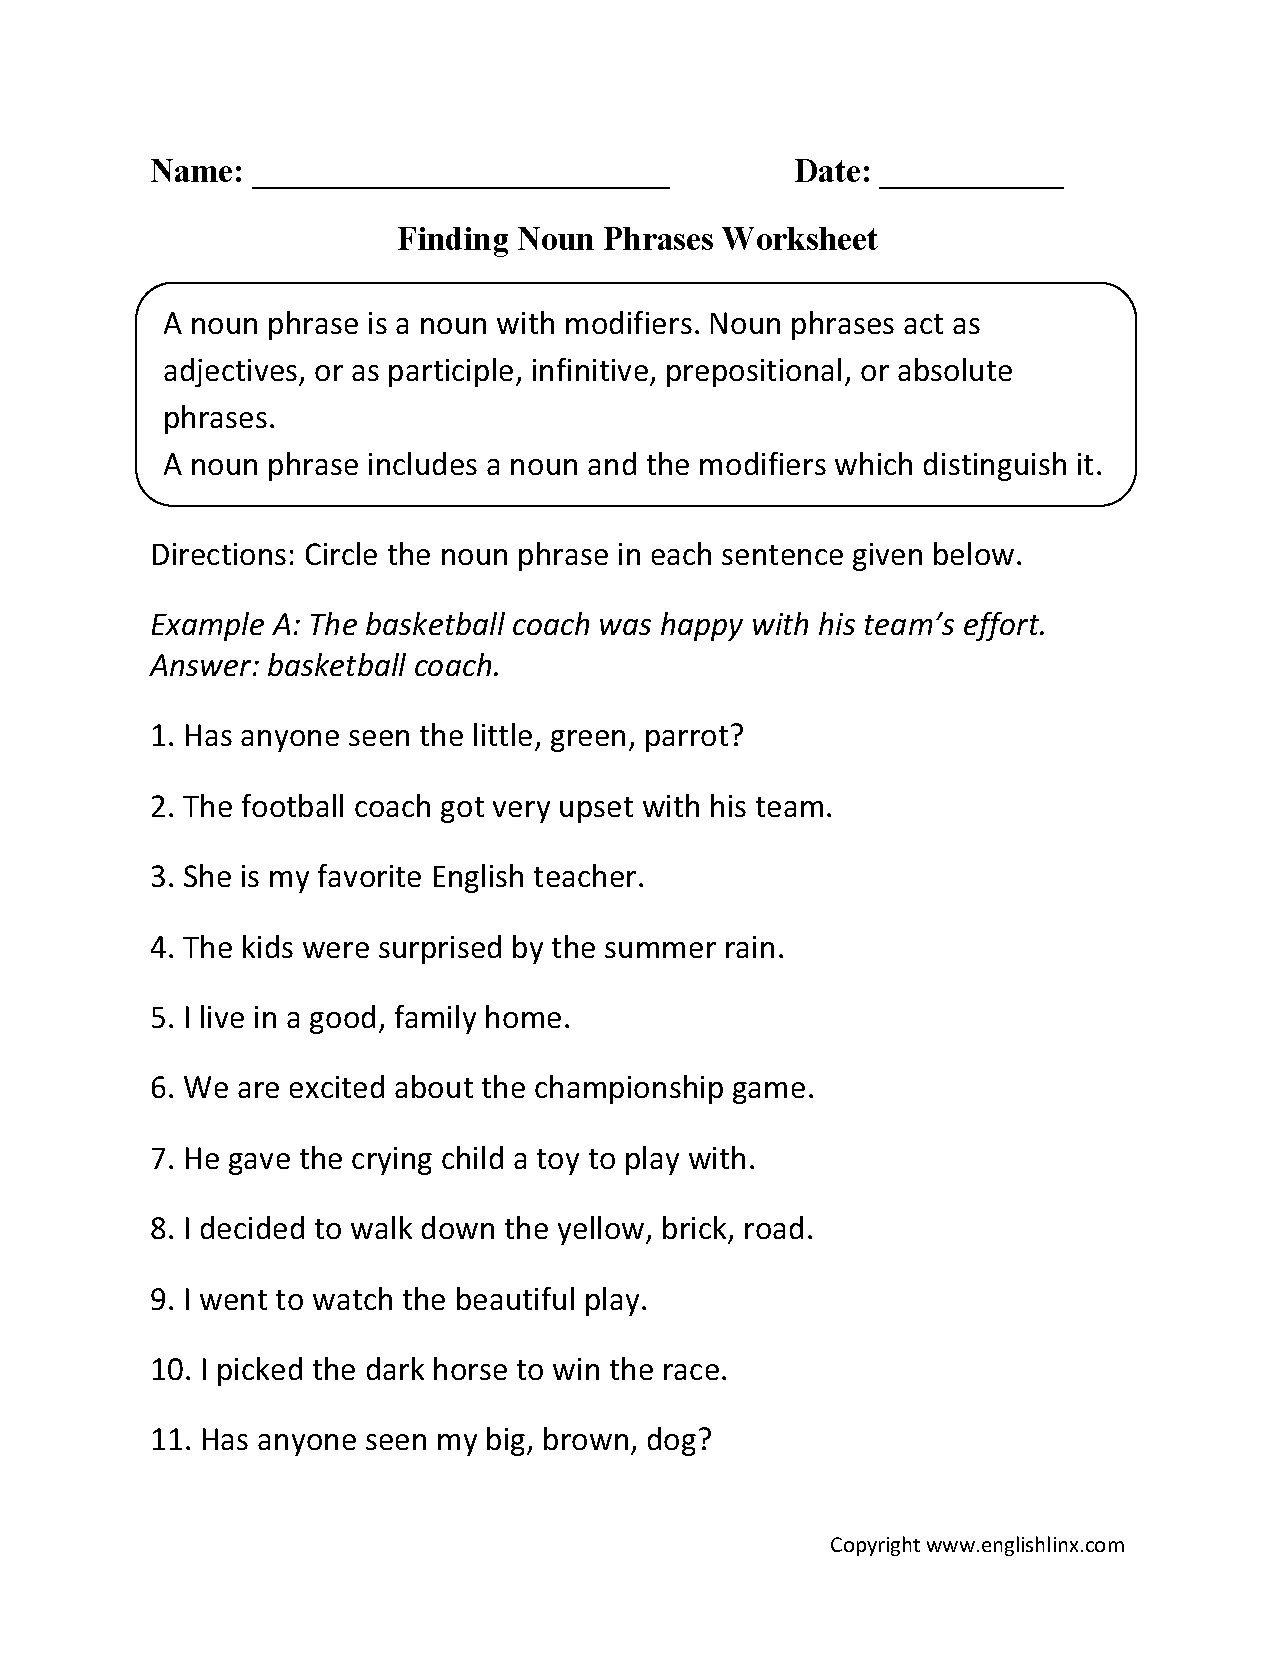 Finding Noun Phrases Worksheets